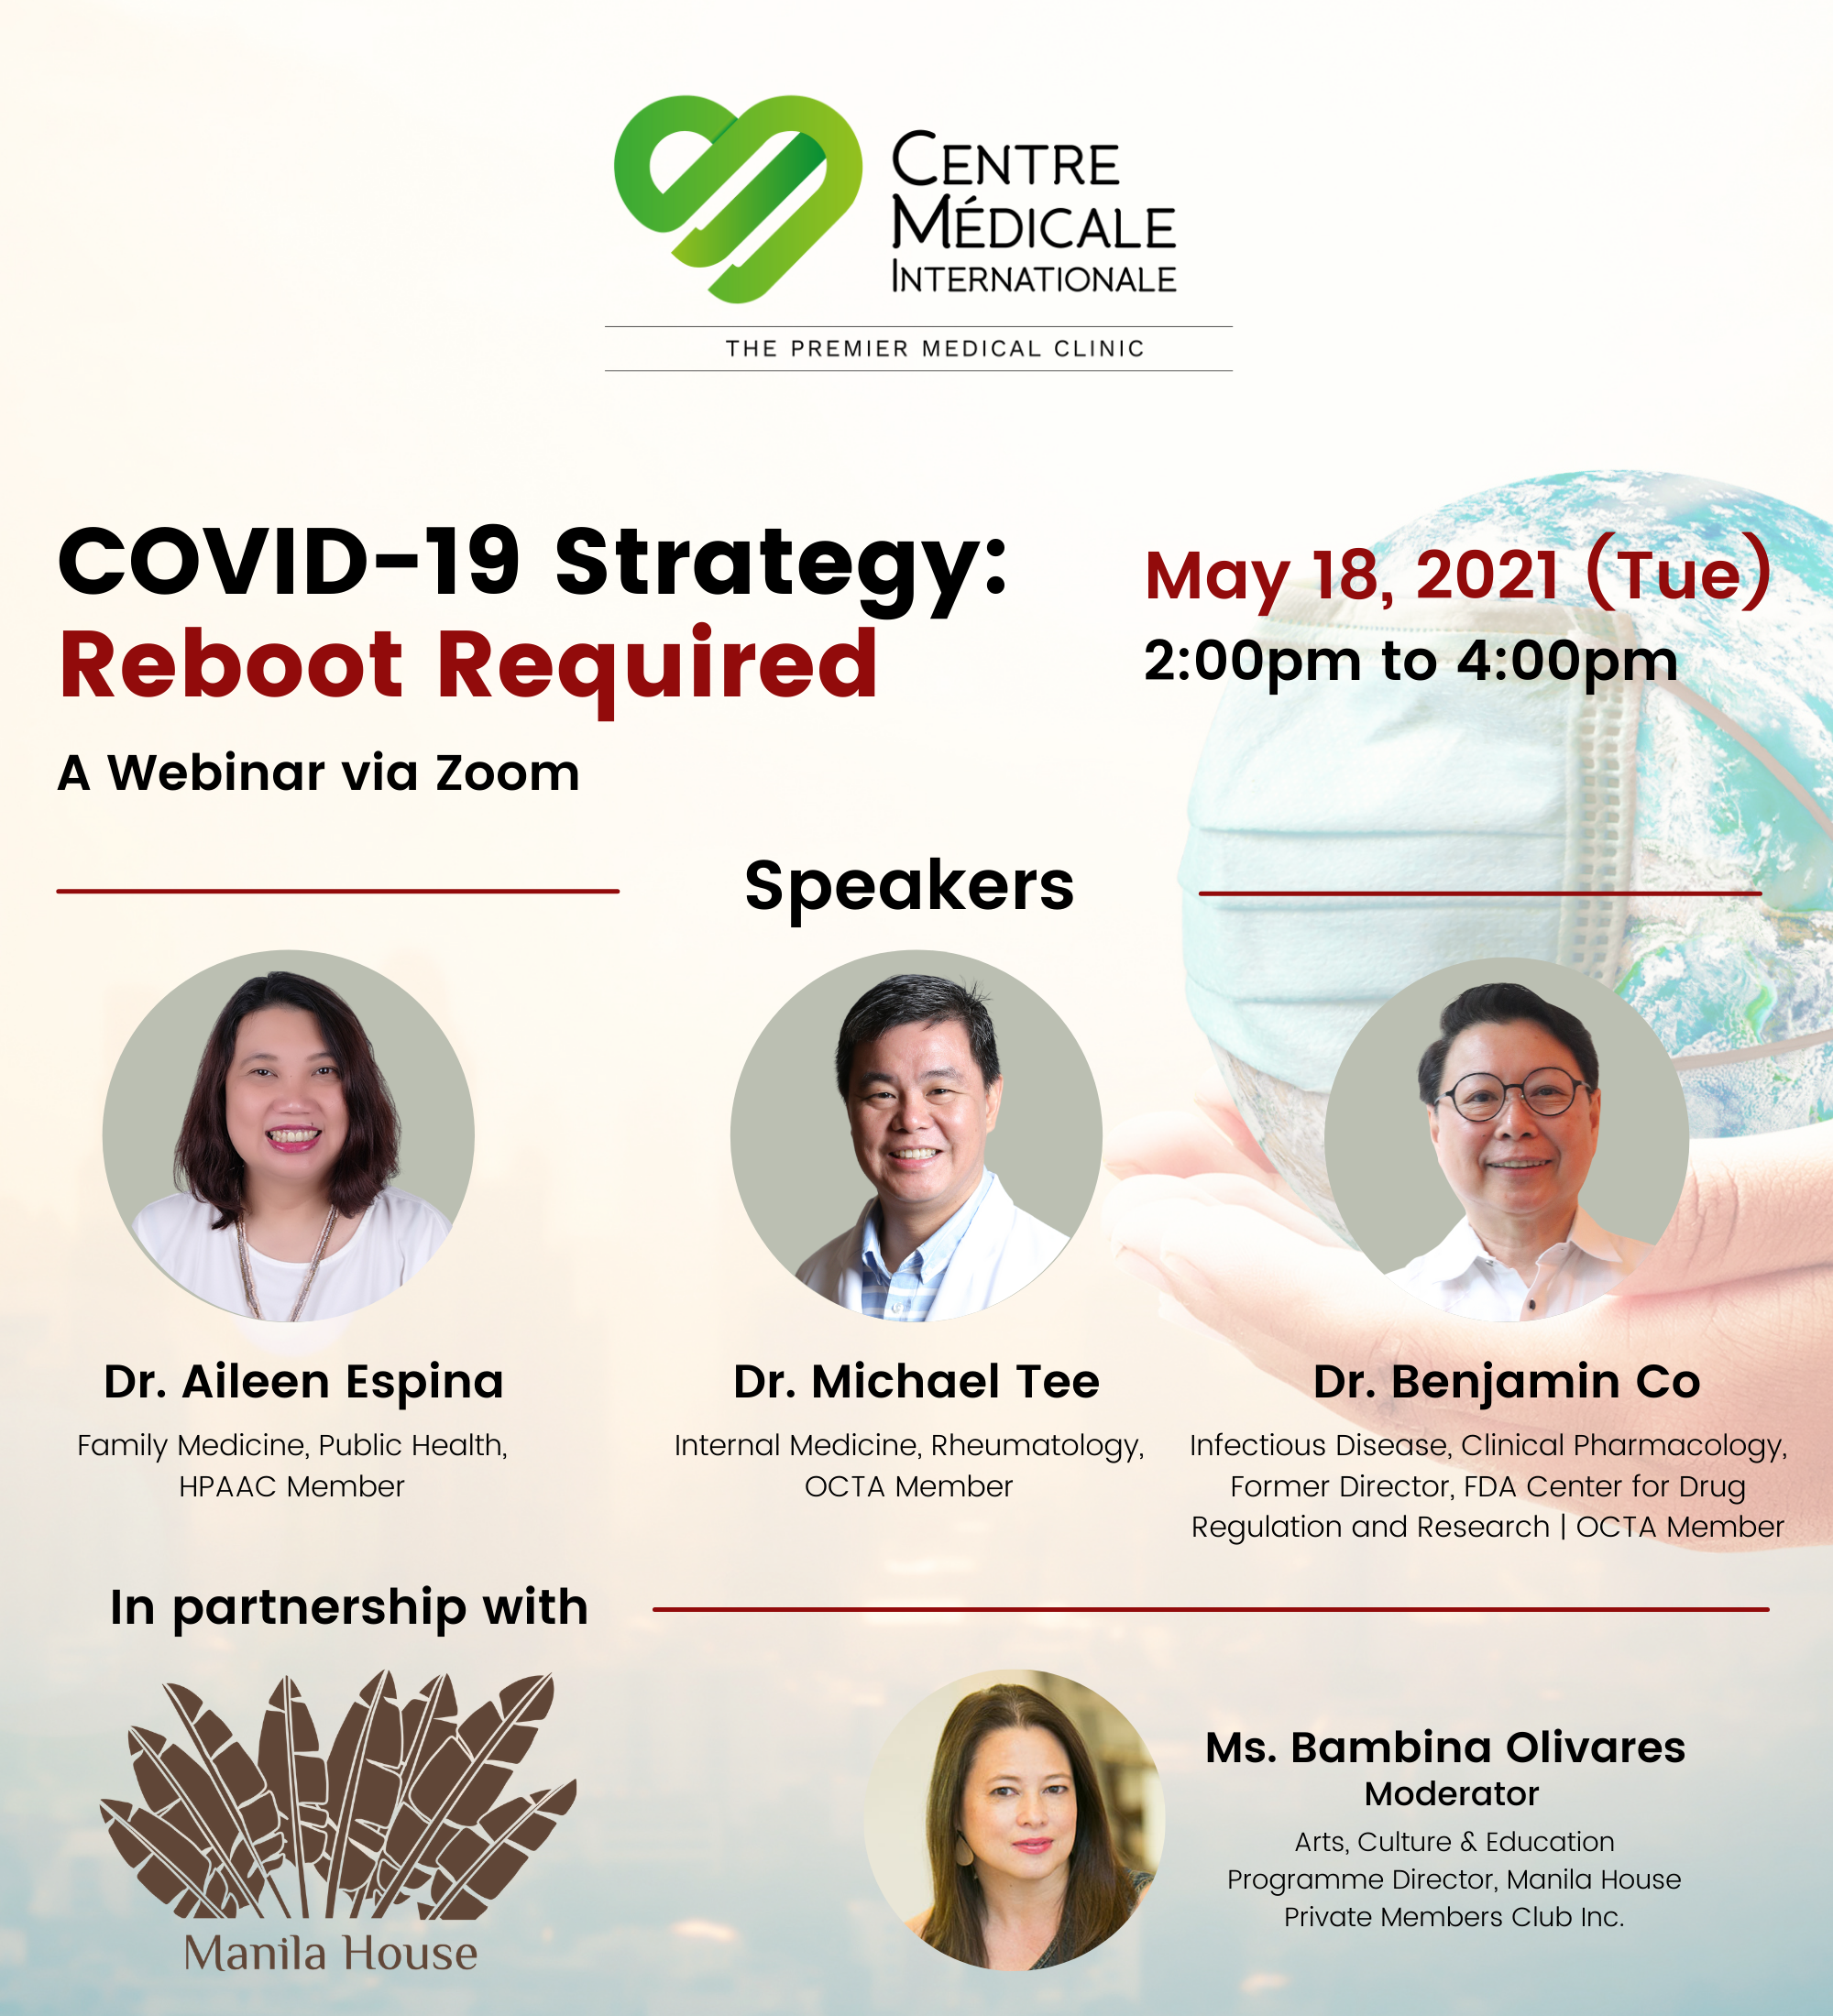 Vaccines, Telemedicine, APAT Dapat: Better ways to respond to COVID-19